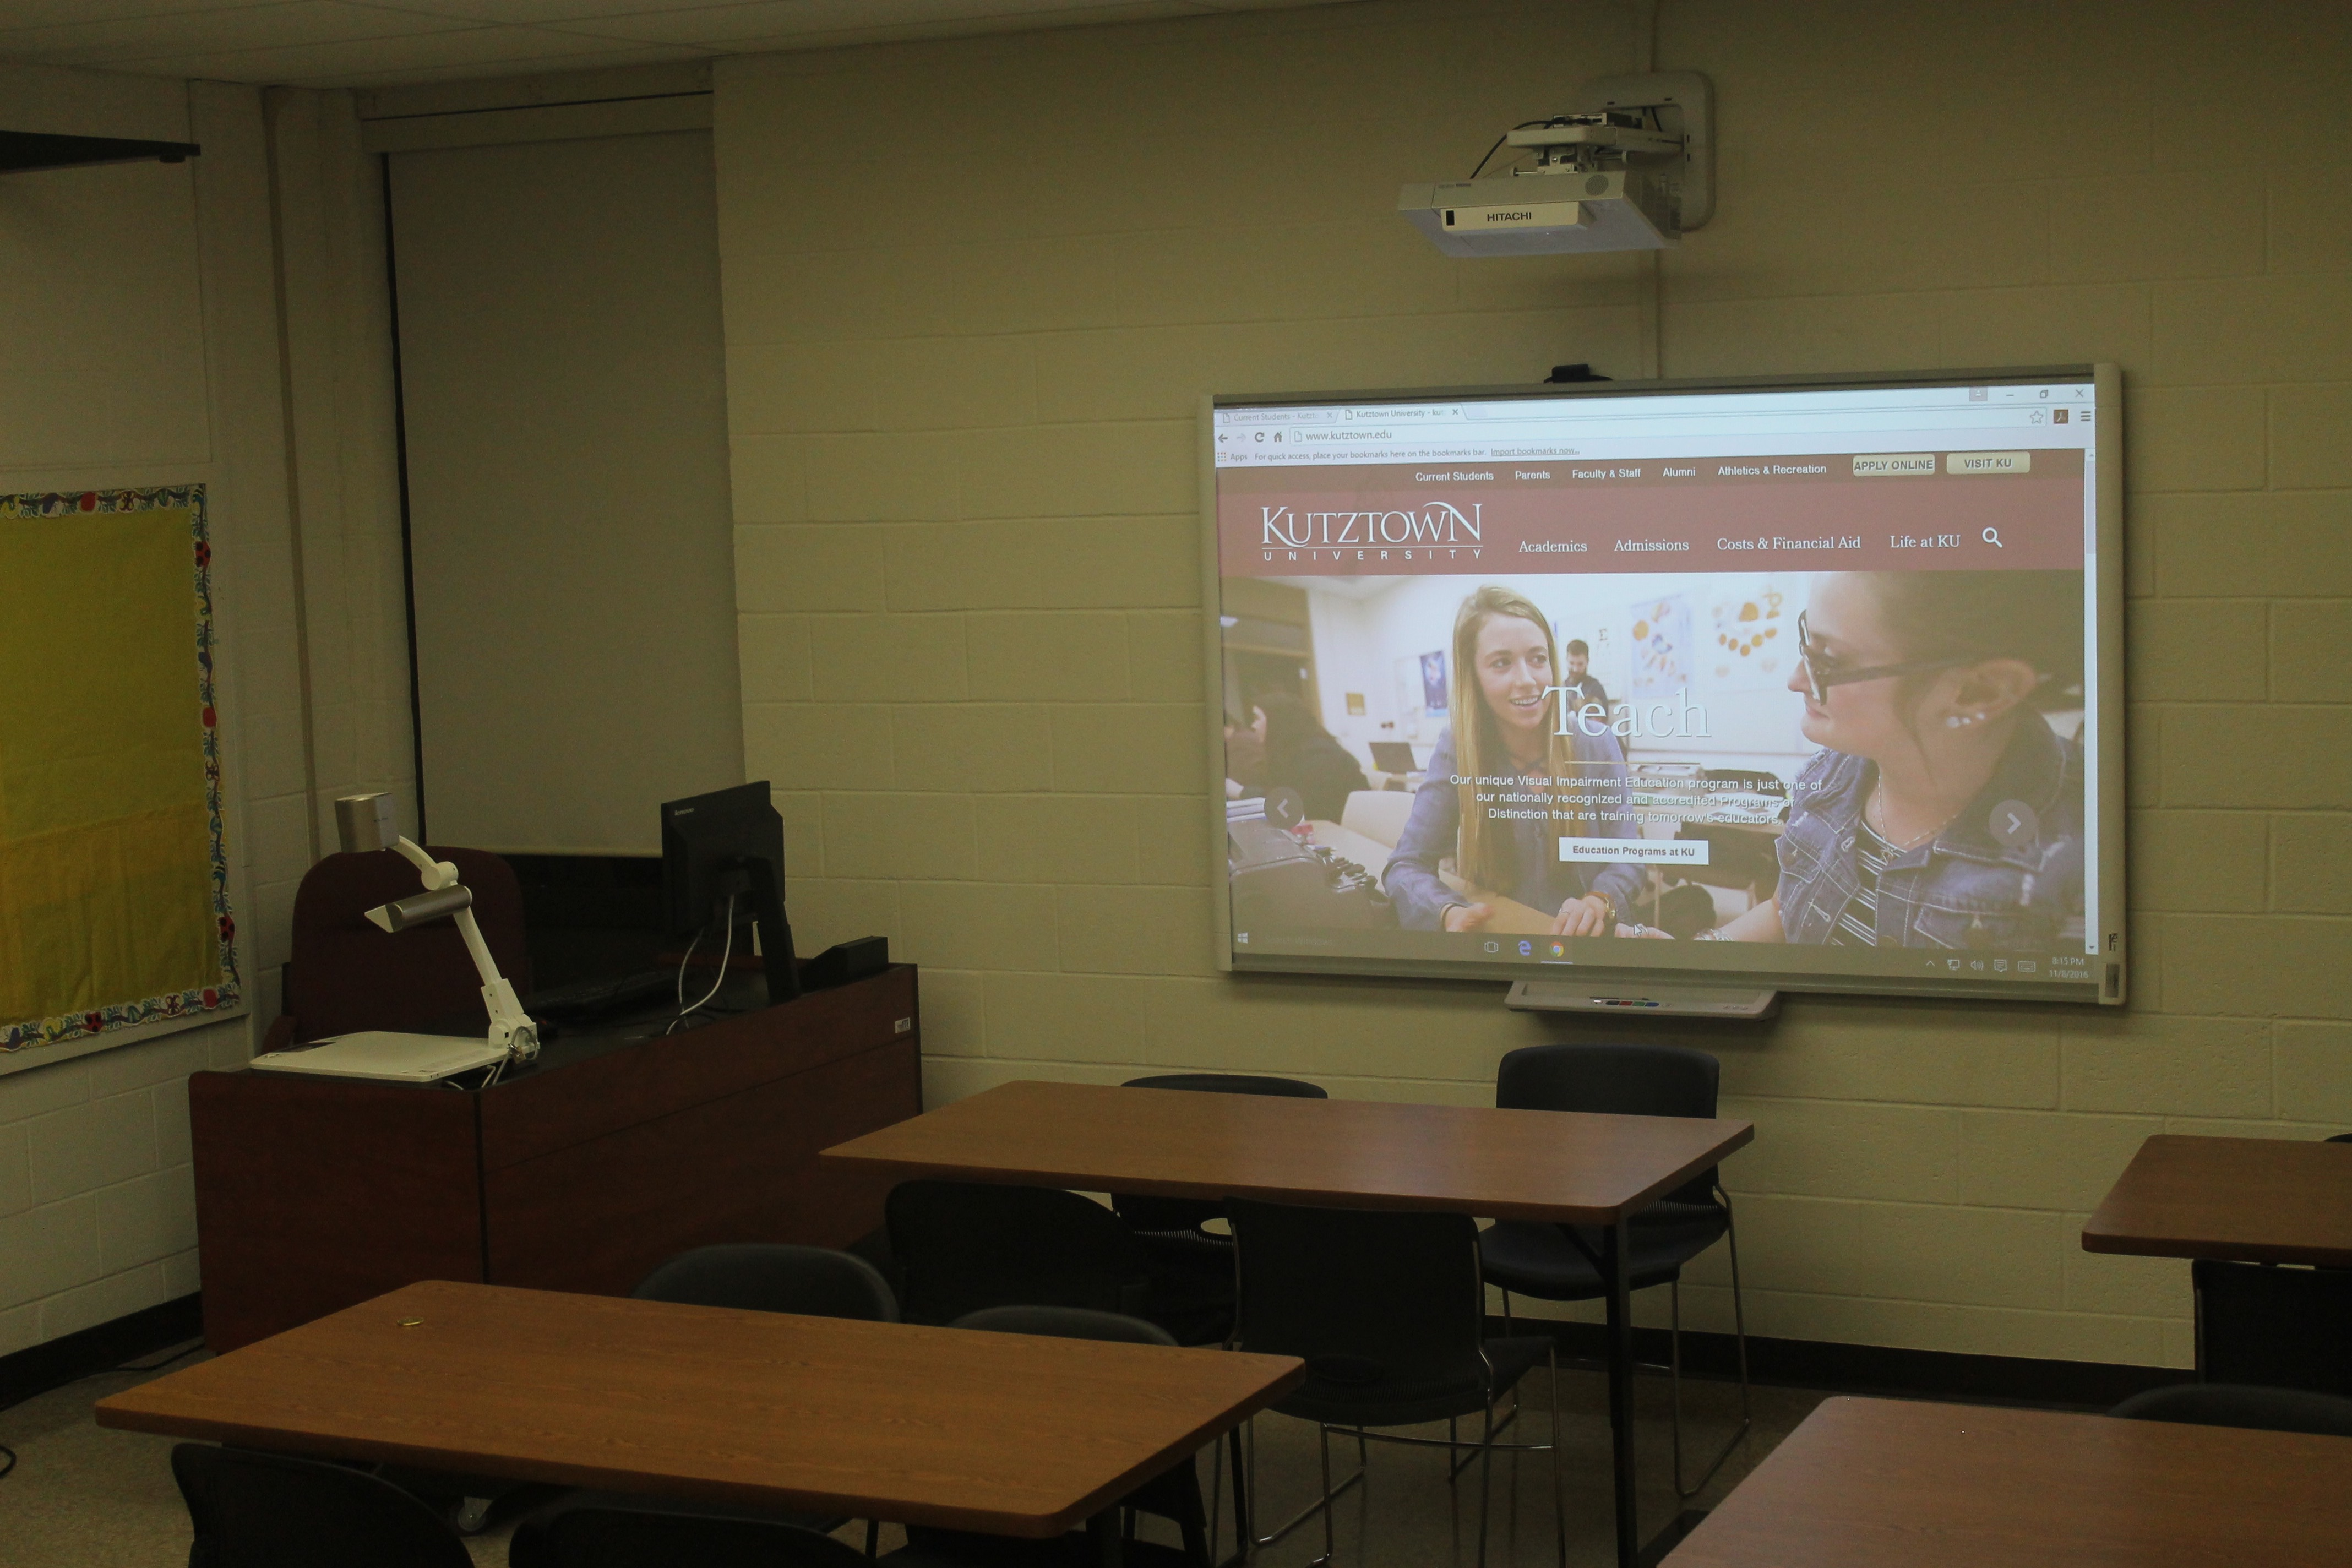 Kutztown University Uses Hitachi OneVision Rewards Program to Extend Projector Life and Save on Replacements